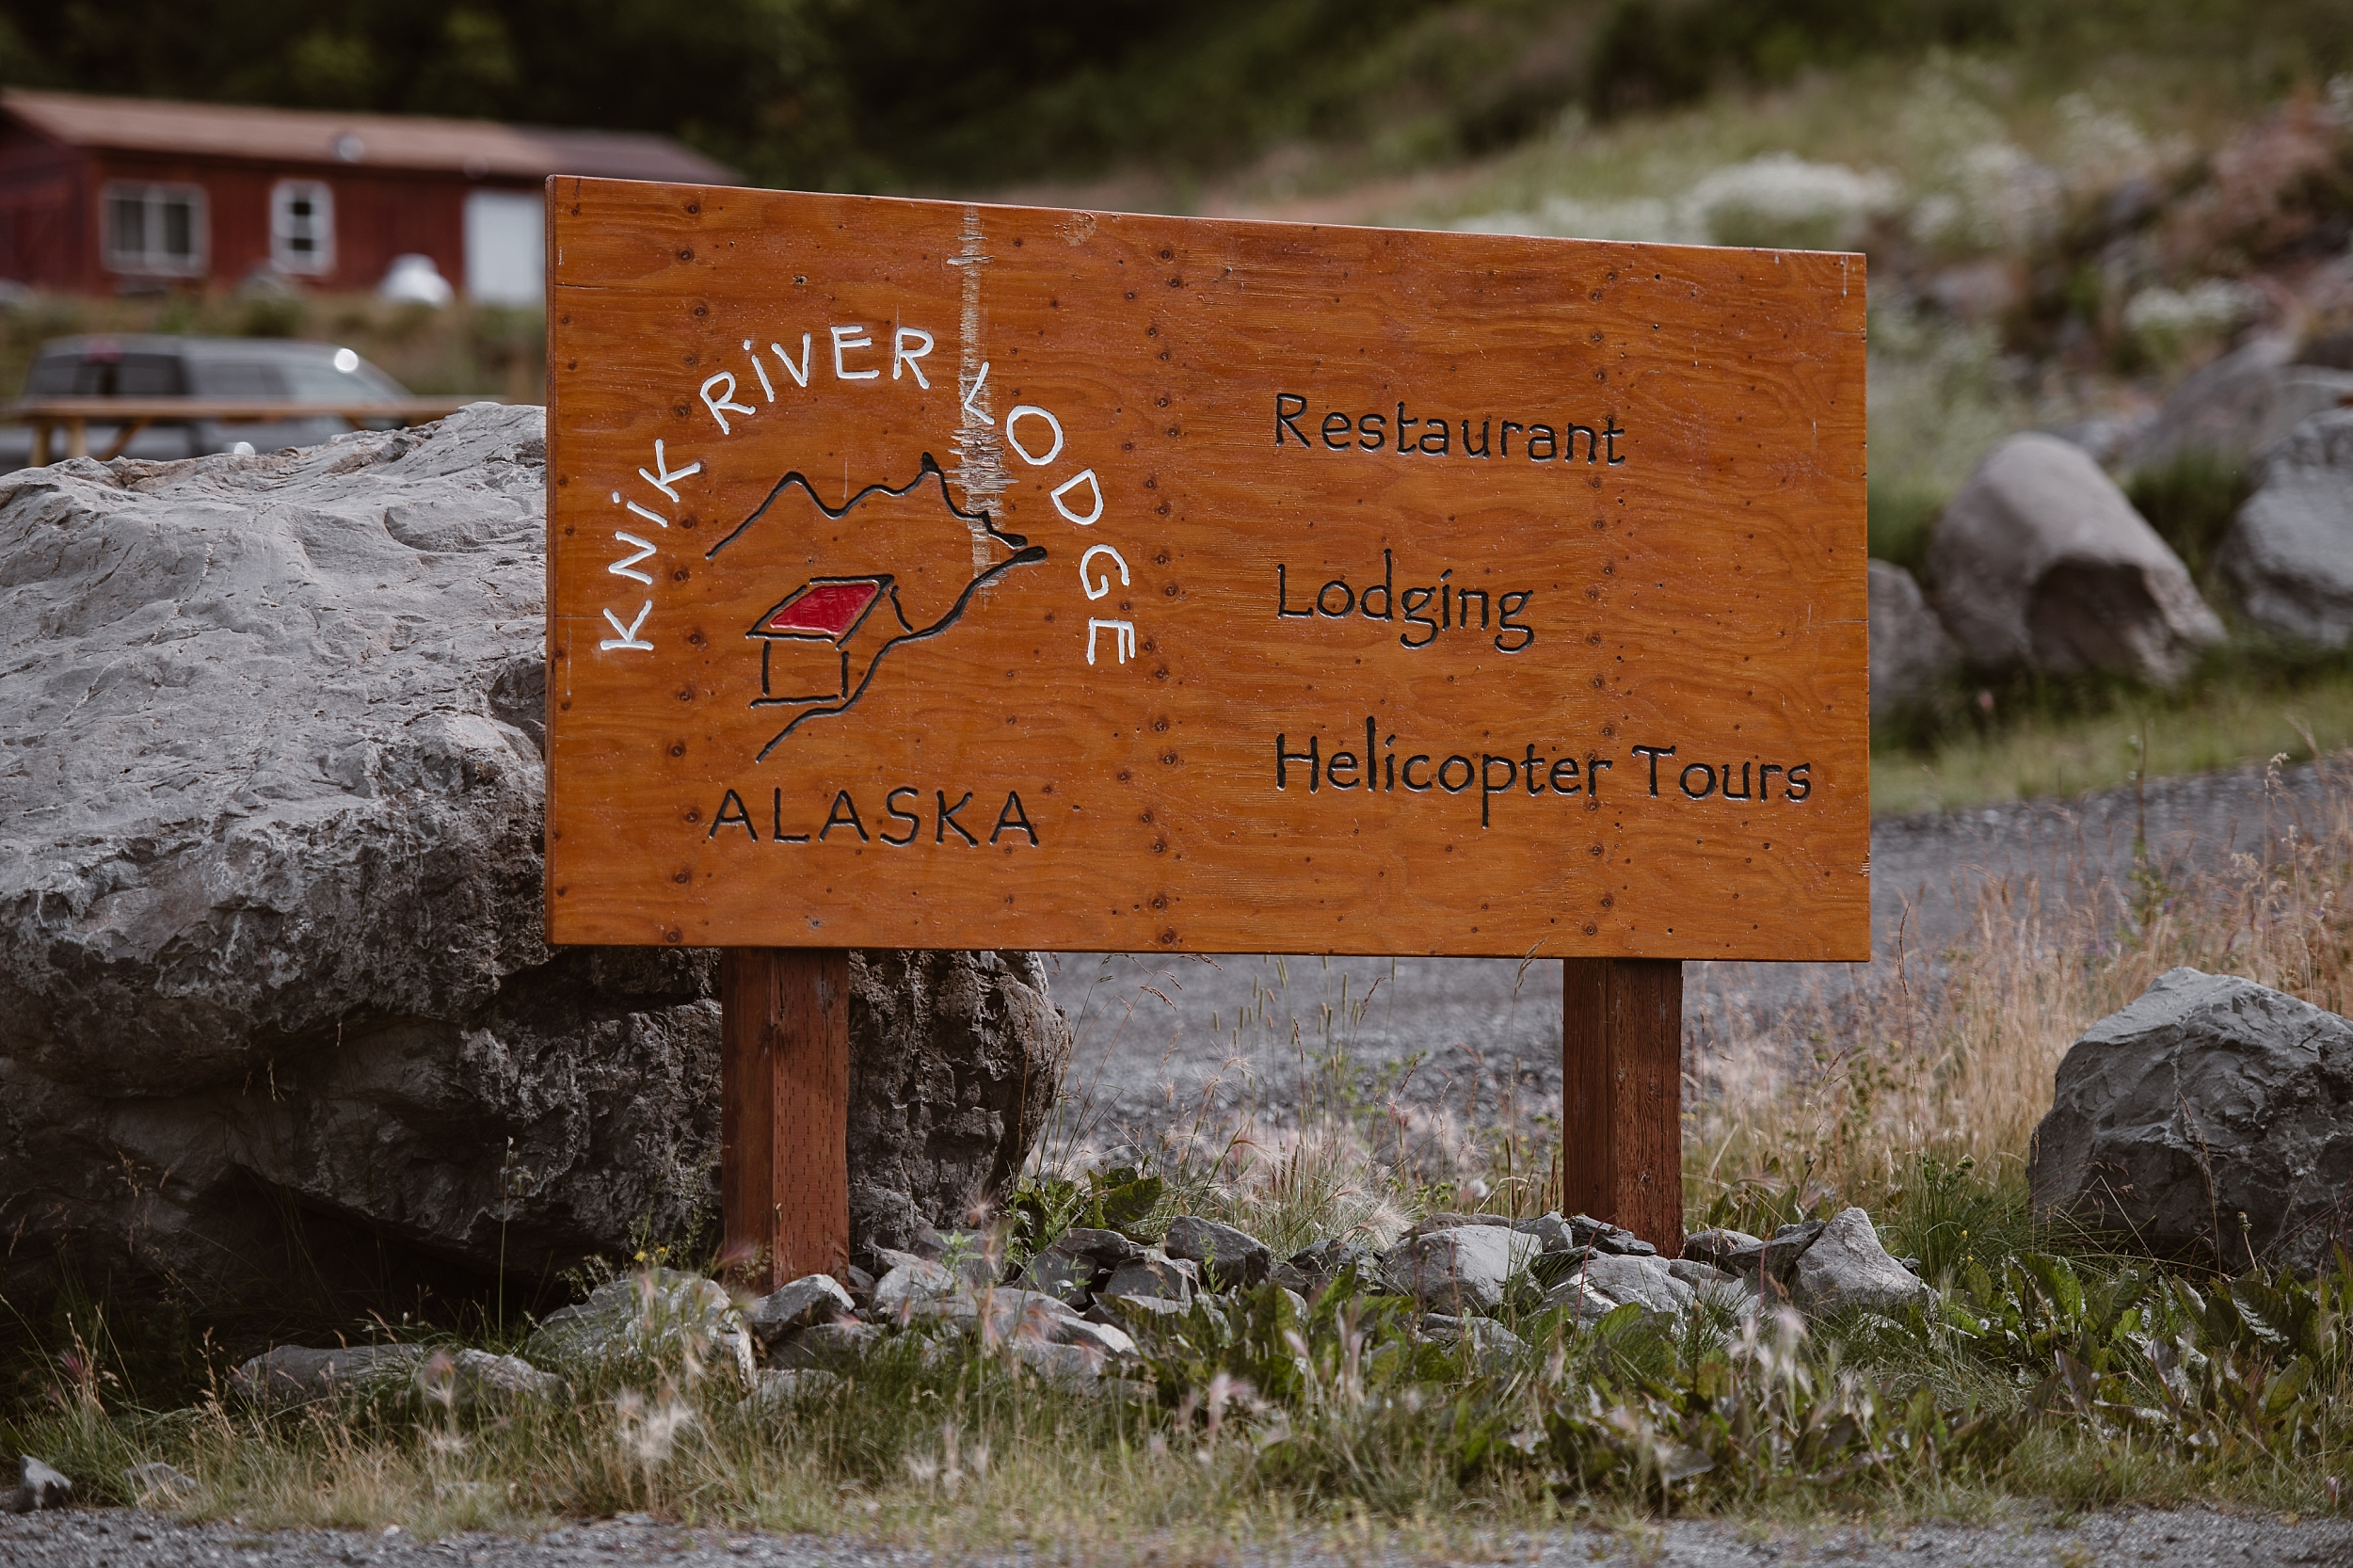 In this image, a wood sign is in focus displaying the Knik River Lodge in Alaska, a restaurant, lodge, and place for helicopter tours. This is where Jordyn and Connor chose to do their first look, sign their marriage license, and who they chose to take a helicopter tour with for their Alaska elopement. This photo was captured by Alaska wedding photographer Adventure Instead.